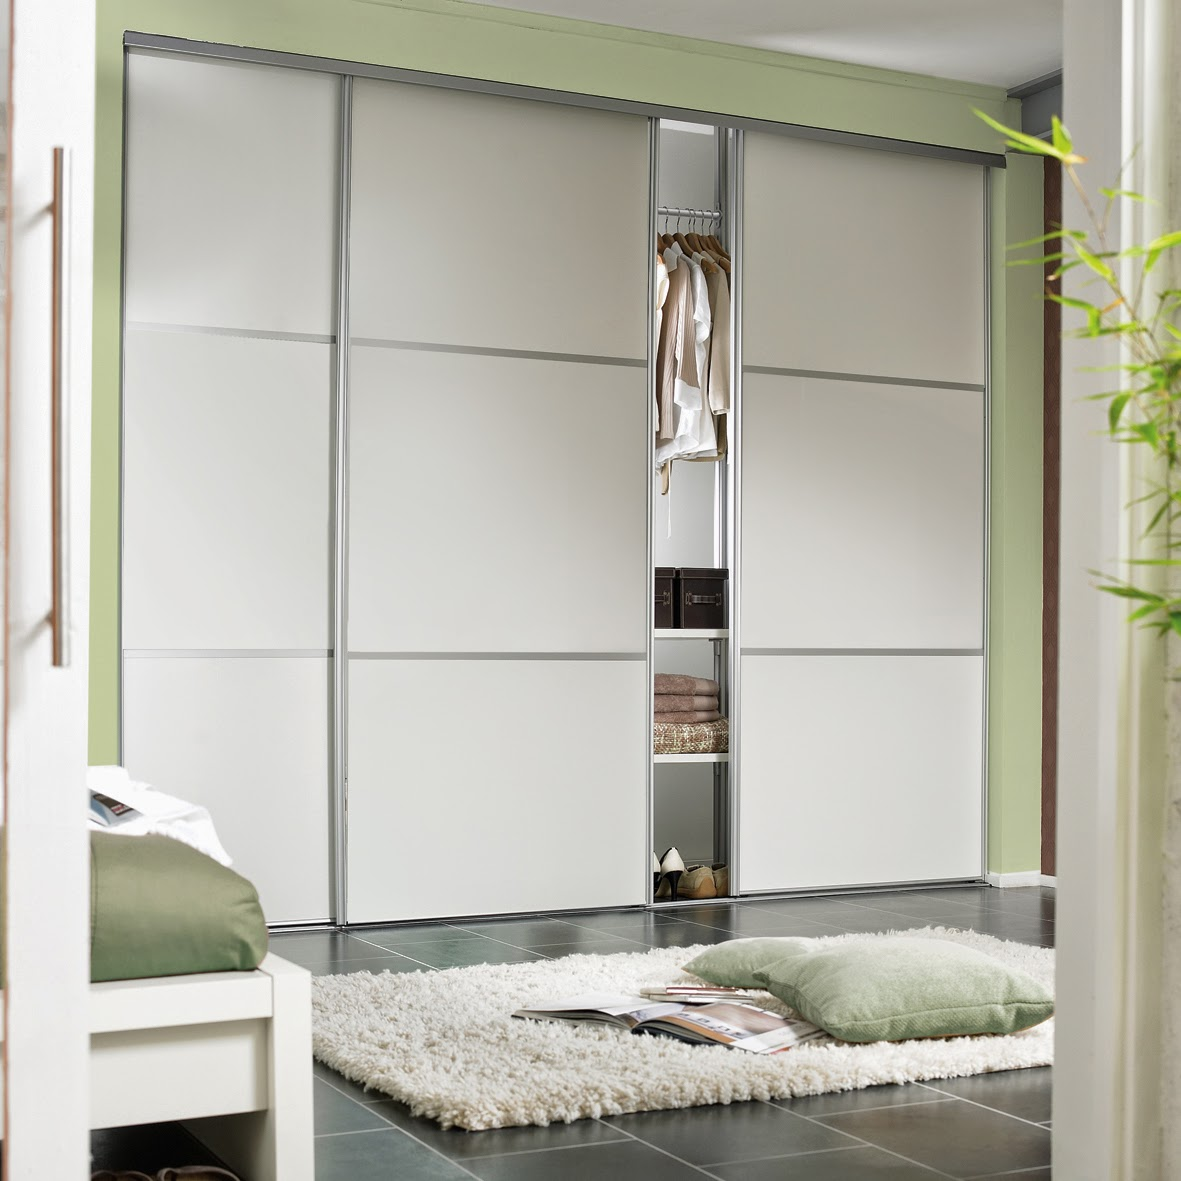 Fitting the track and sliding wardrobe doors & Bedrooms Plus Sliding Wardrobe Doors and Fittings: How to Install ...